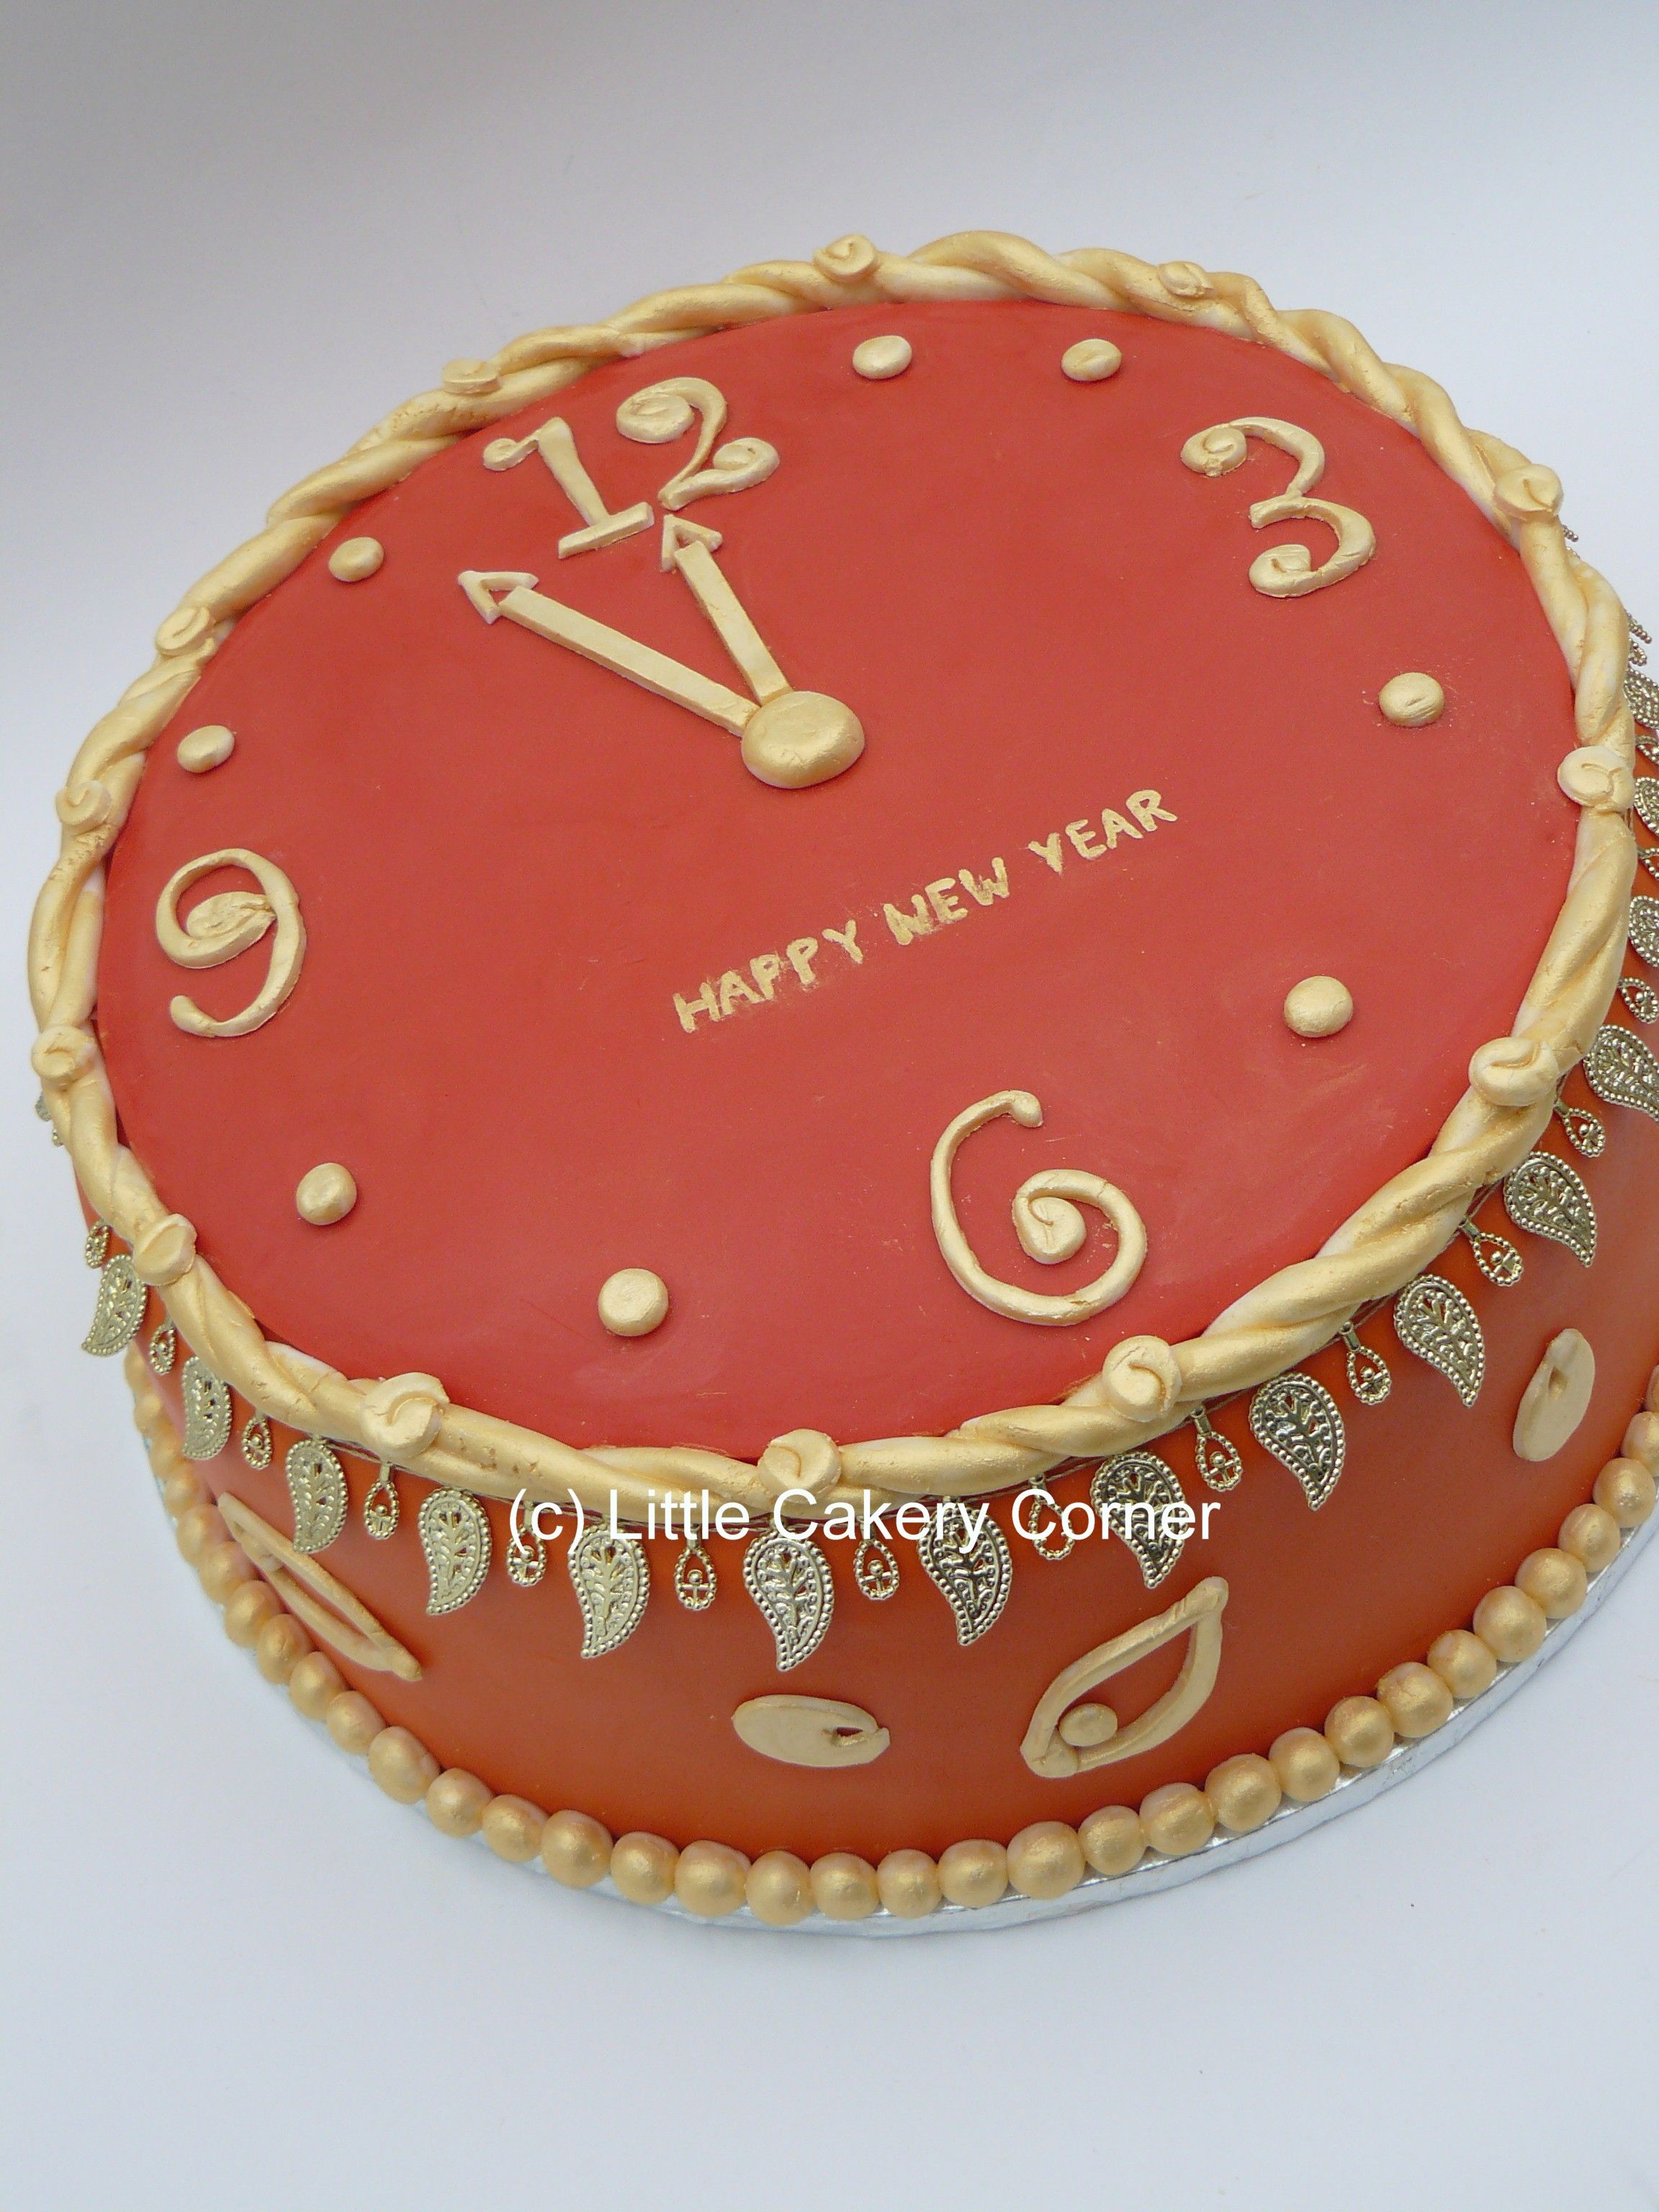 Happy New Year Cake This Orange Red And Gold Clock Cake